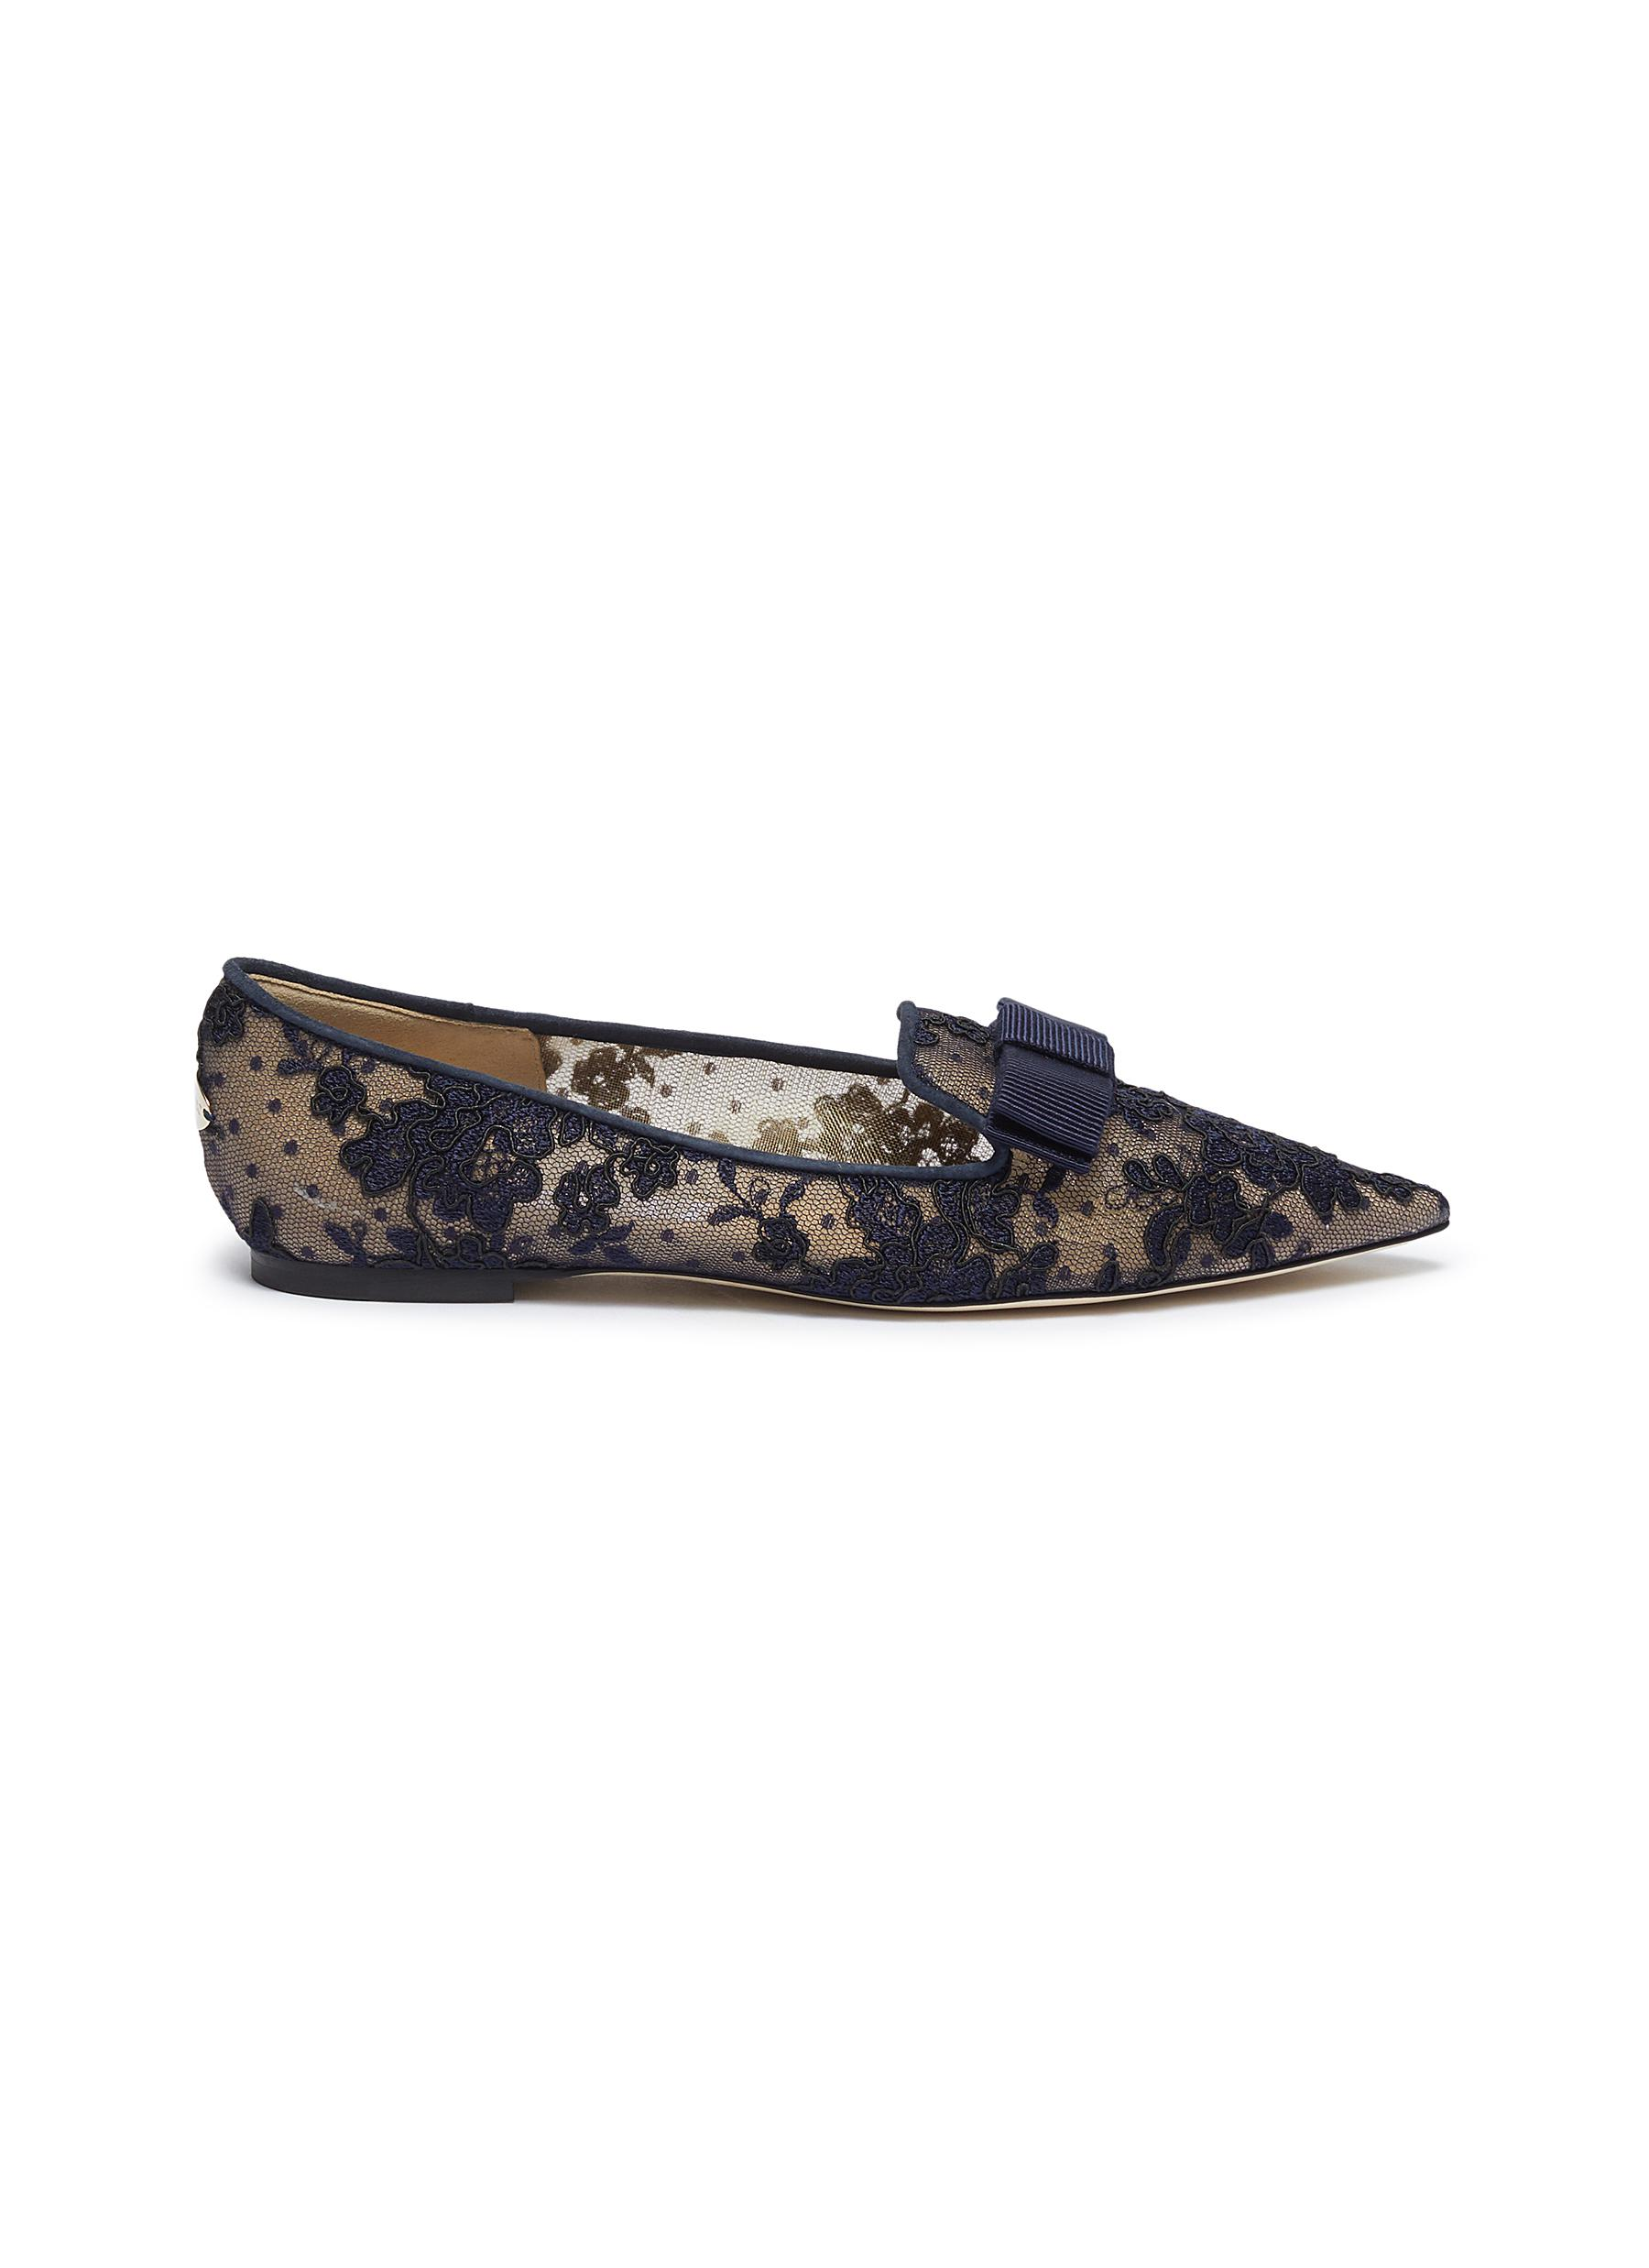 Gala floral lace loafers by Jimmy Choo